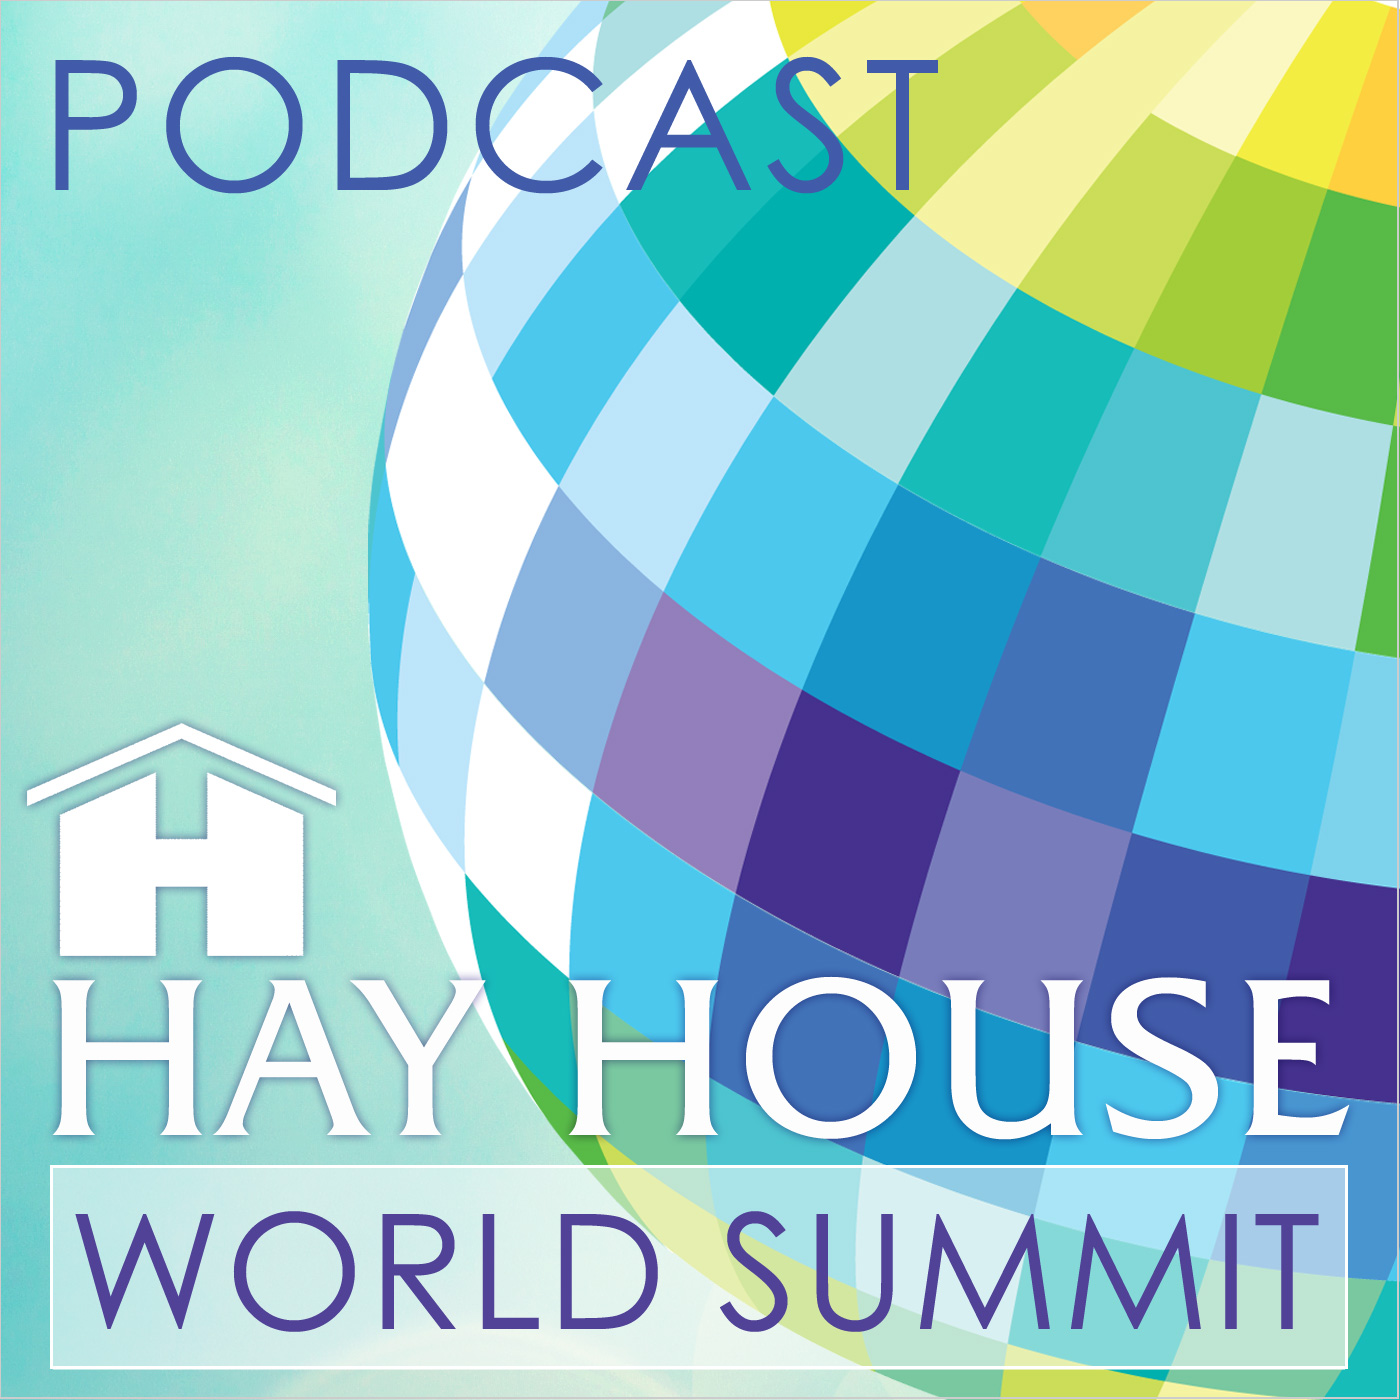 Hay House World Summit Podcasts